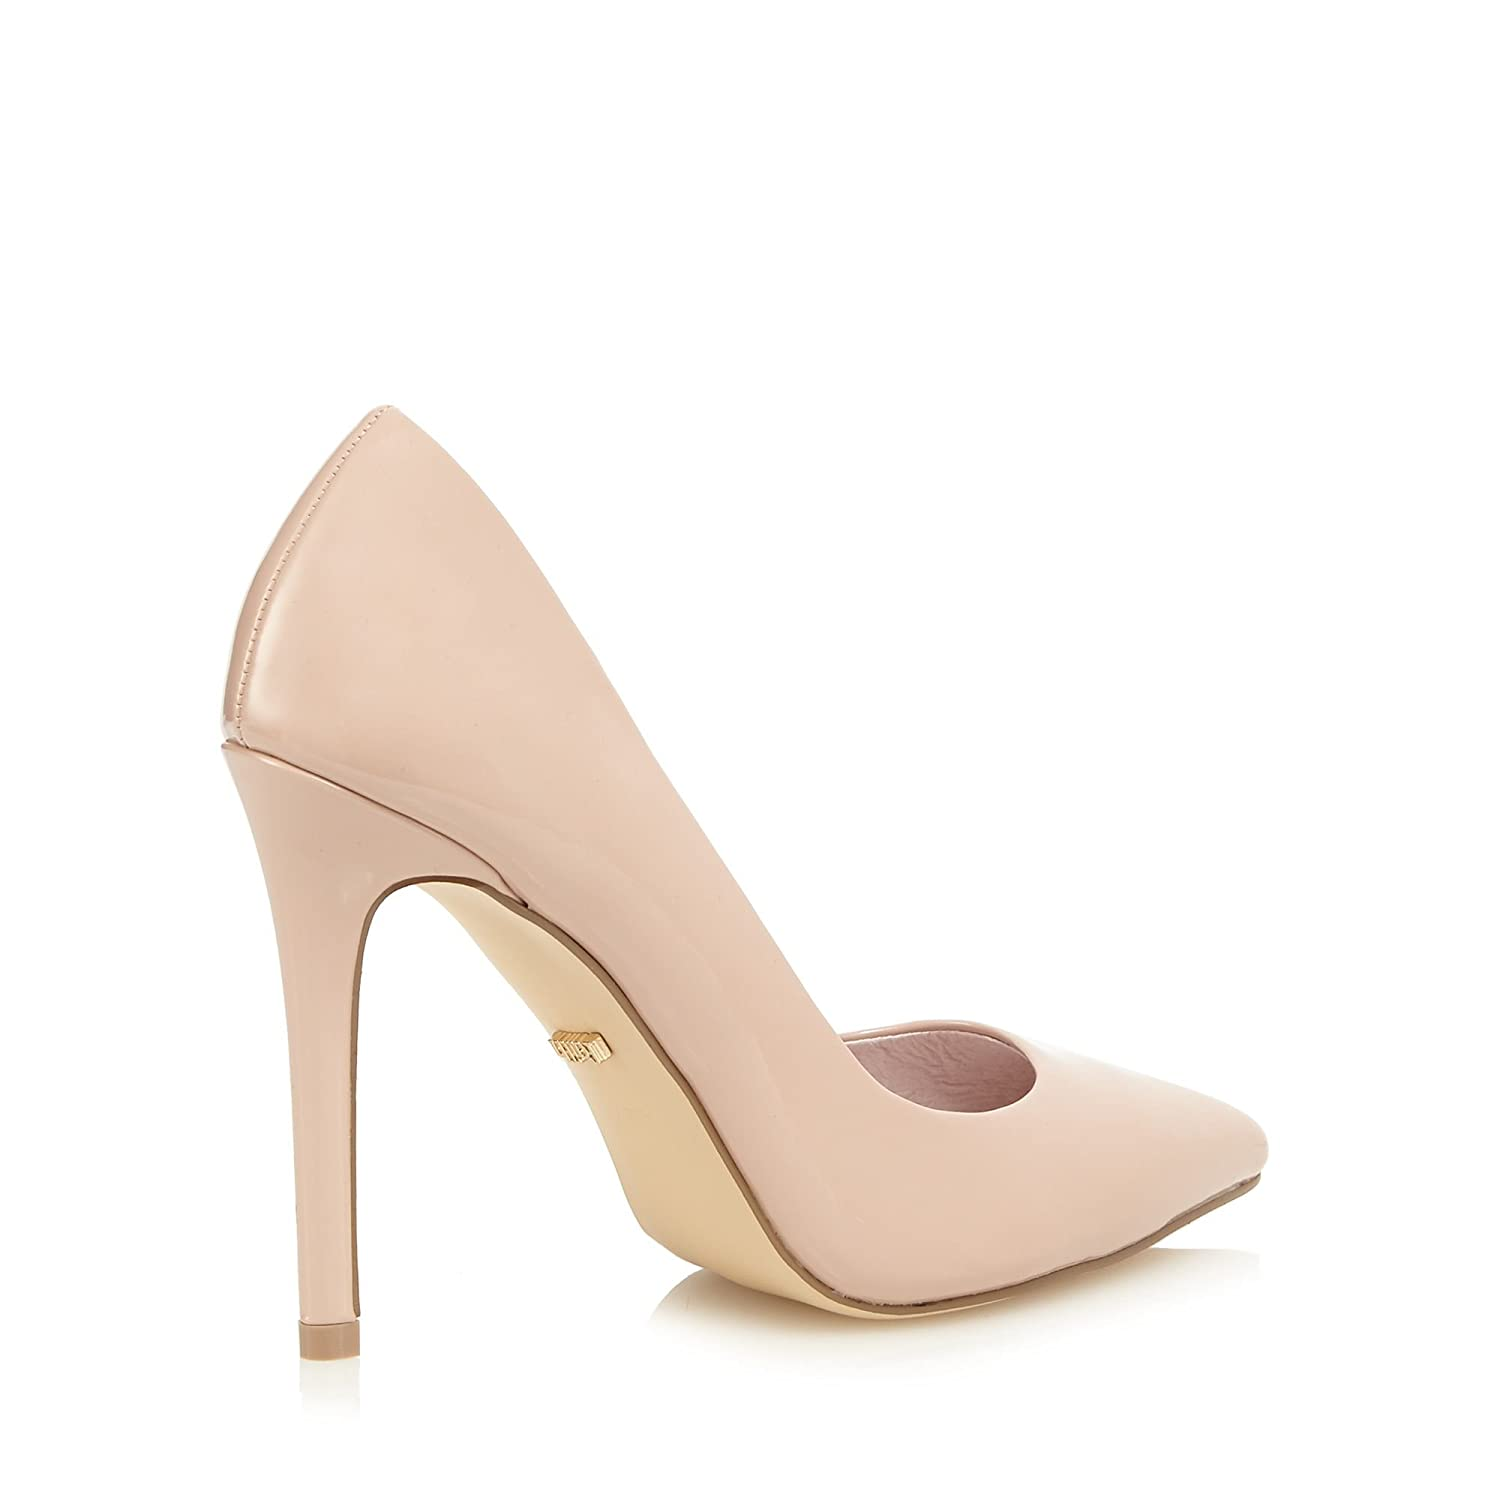 bfa88409fe6 Faith Womens Light Pink Patent 'Chloe' High Heel Wide Fit Pointed ...